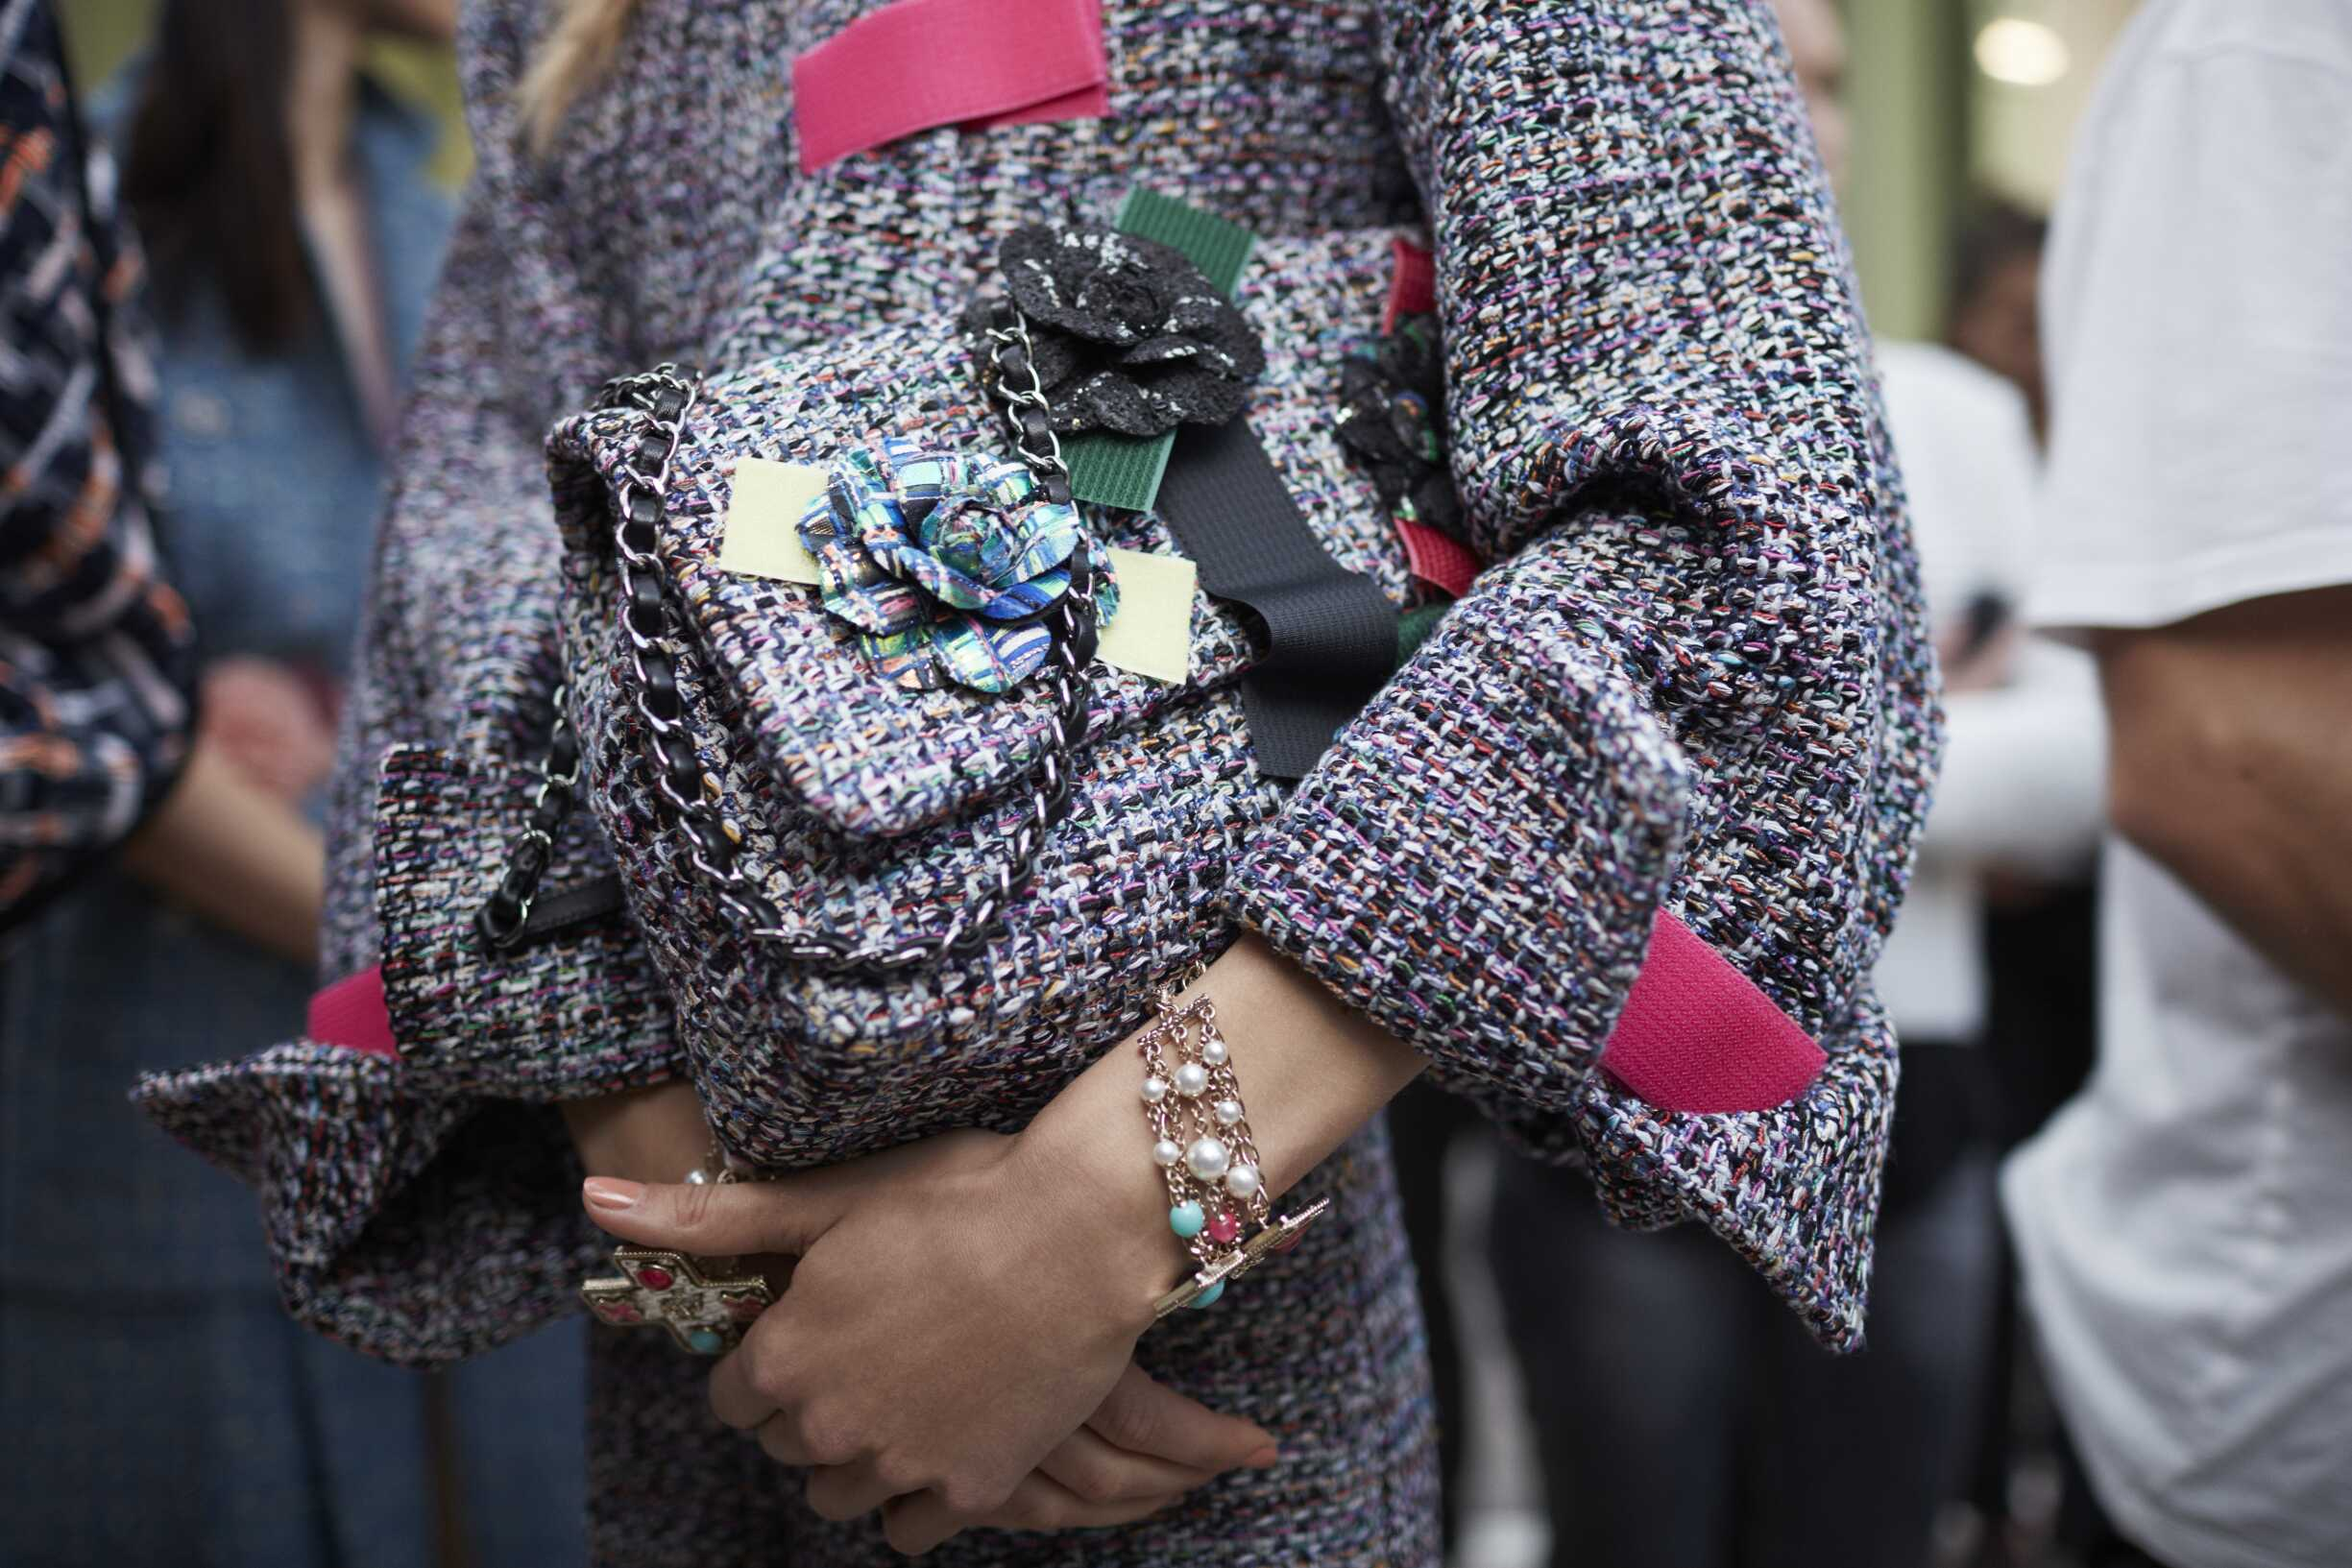 Chanel Bag and Accessories Detail